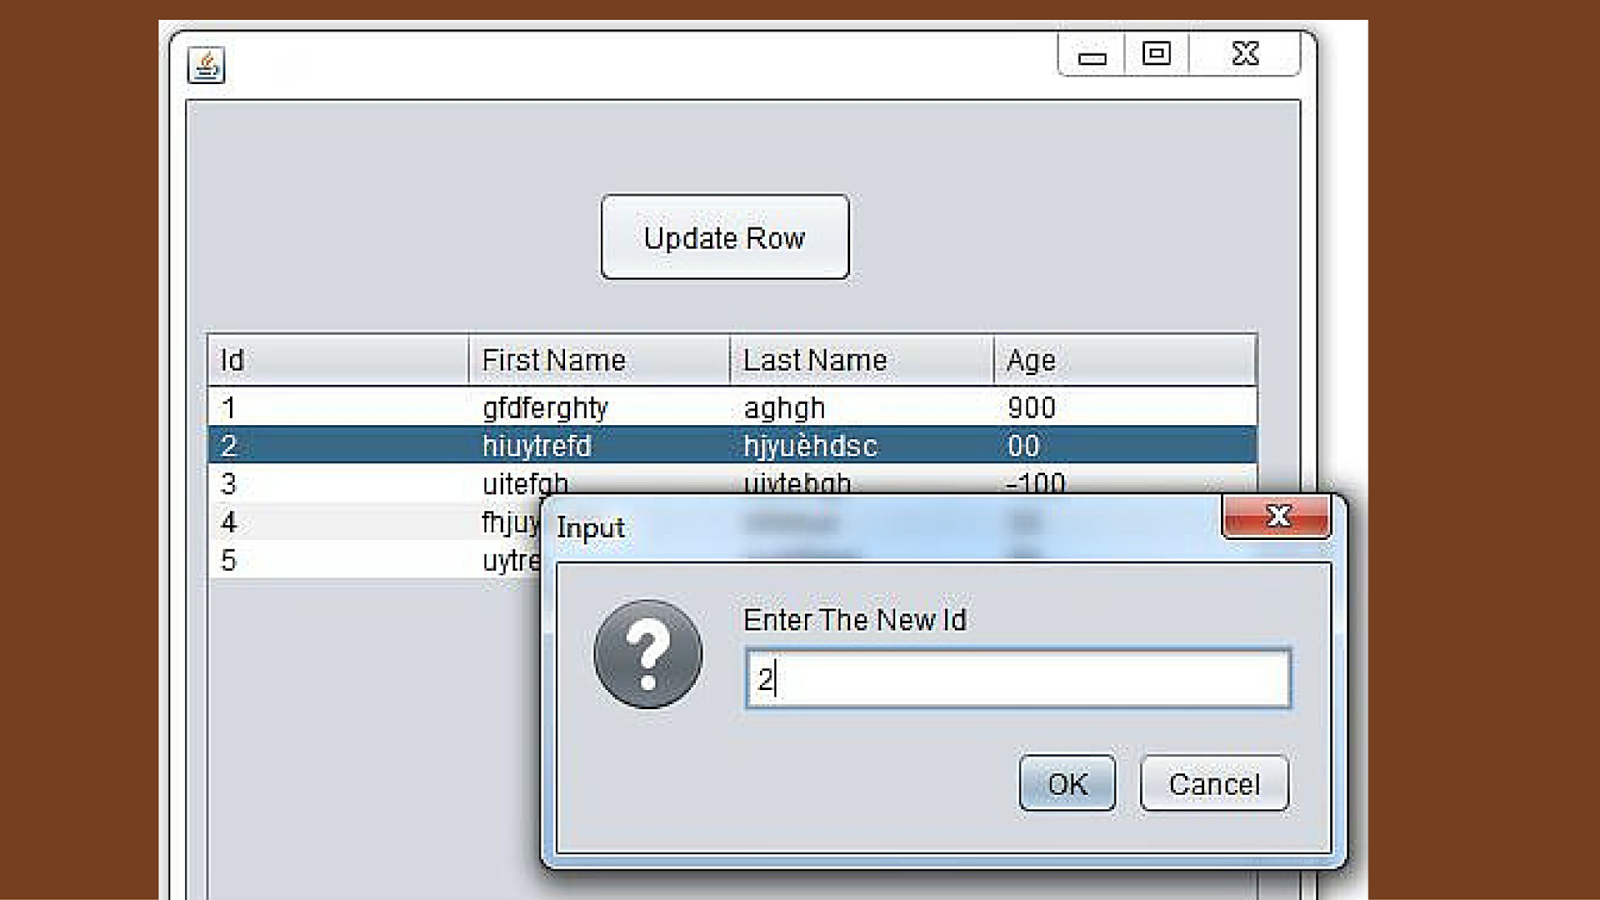 Java How To Update A Jtable Row Using Joptionpane